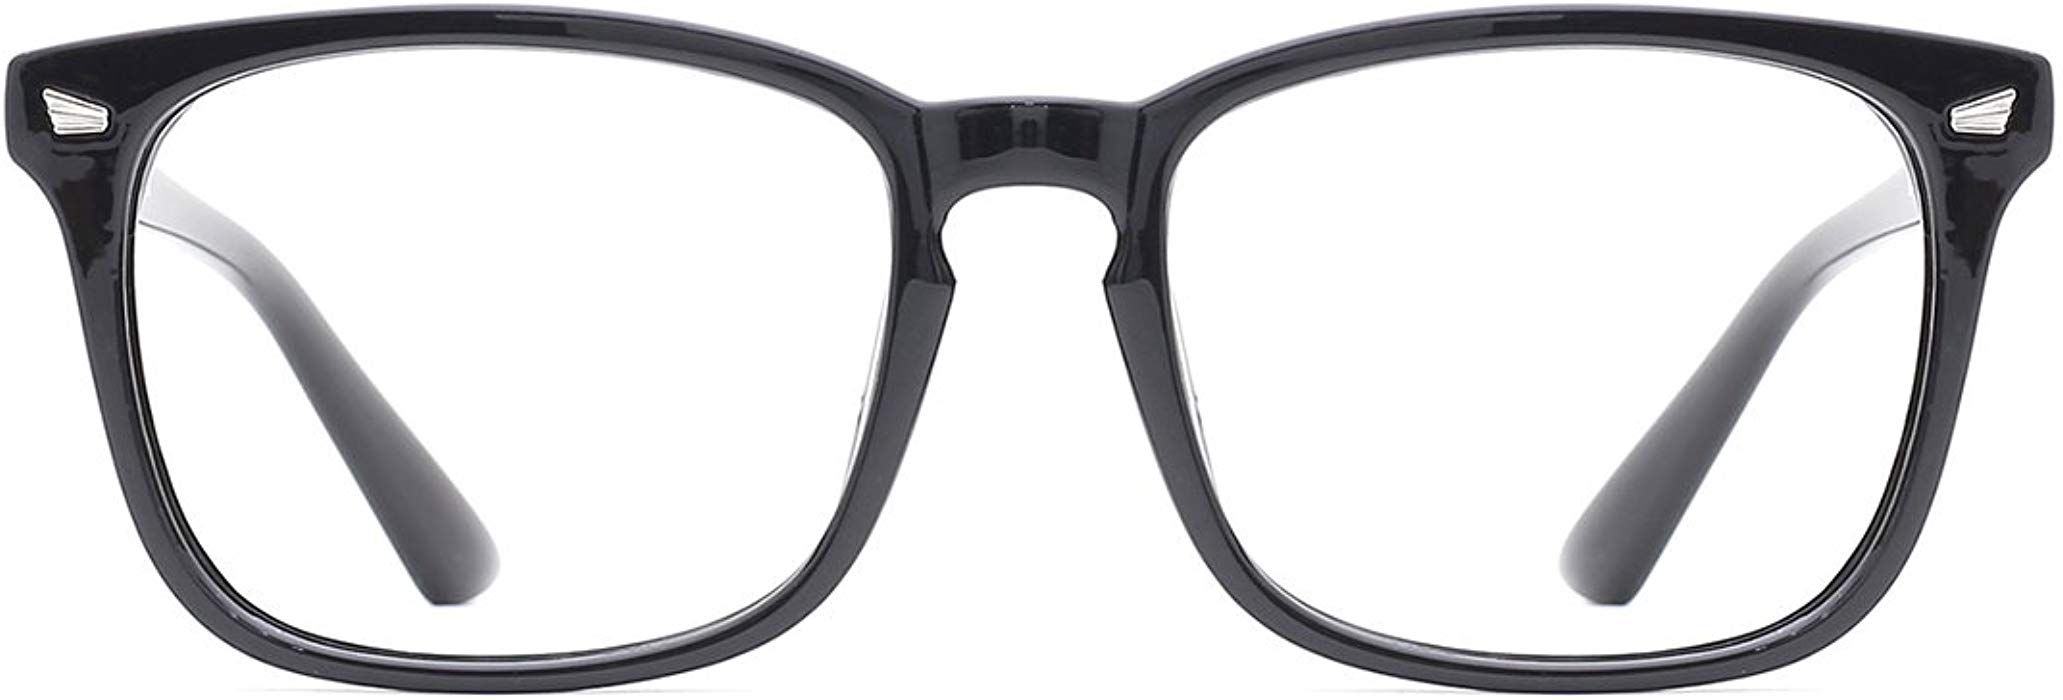 d799be8b6c Amazon.com  TIJN Blue Light Blocking Glasses Square Nerd Eyeglasses Frame  Anti Blue Ray Computer Game Glasses  Clothing